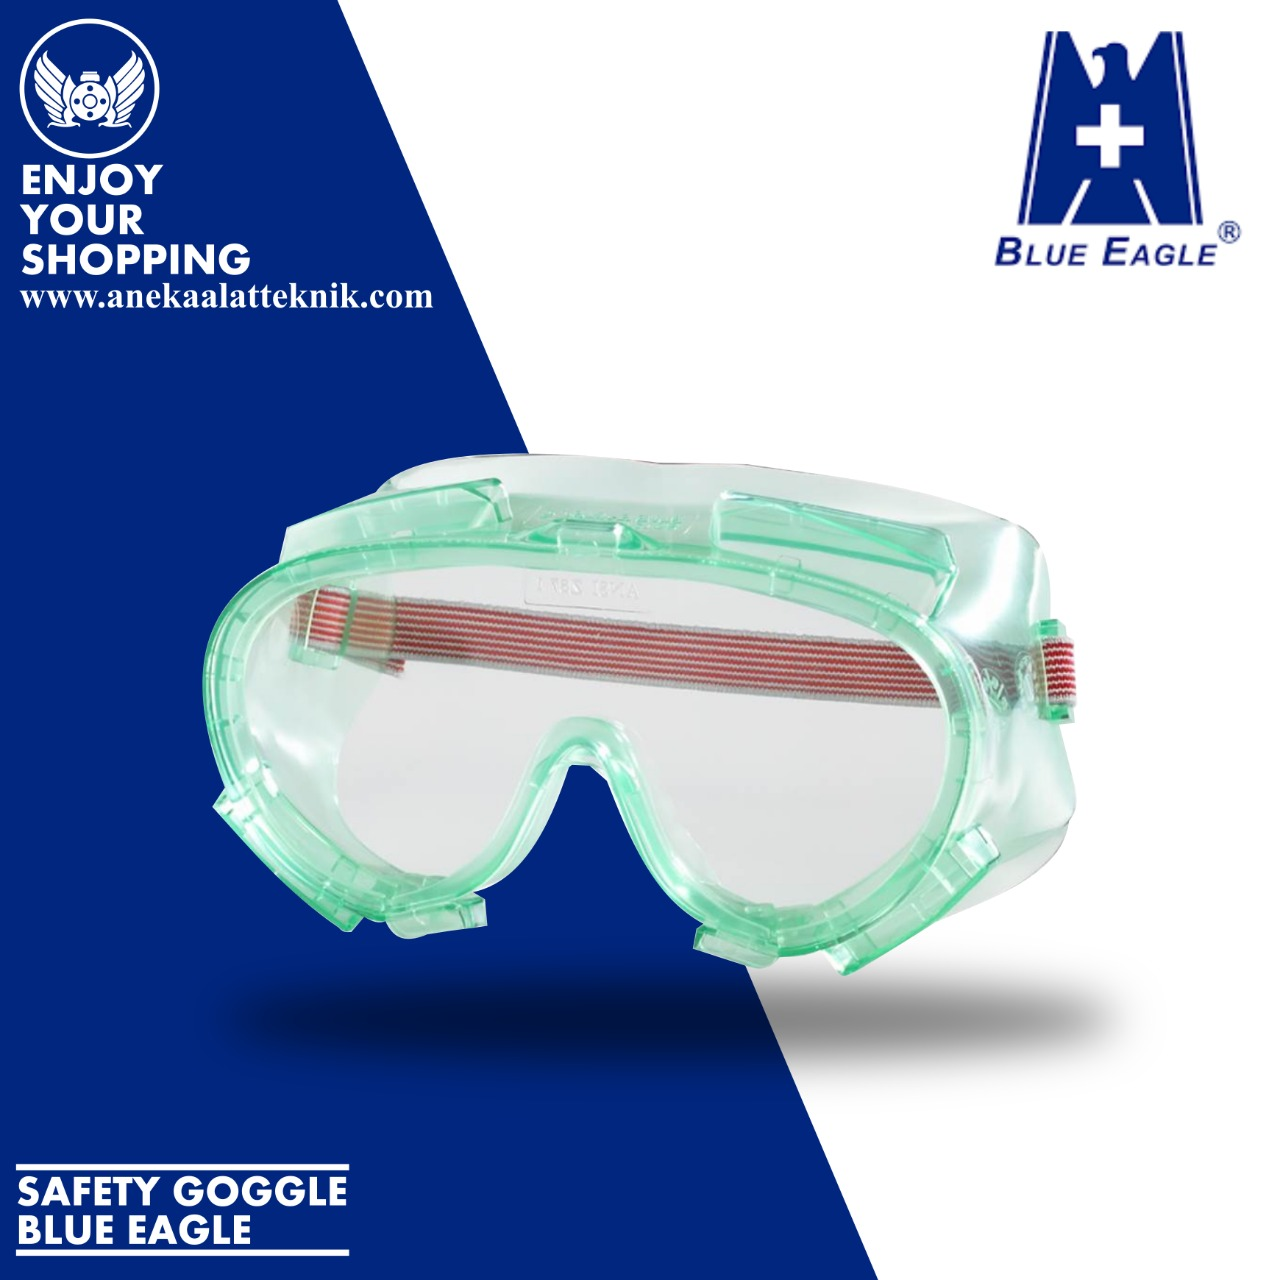 SAFETY GOGGLE BLUE EAGLE